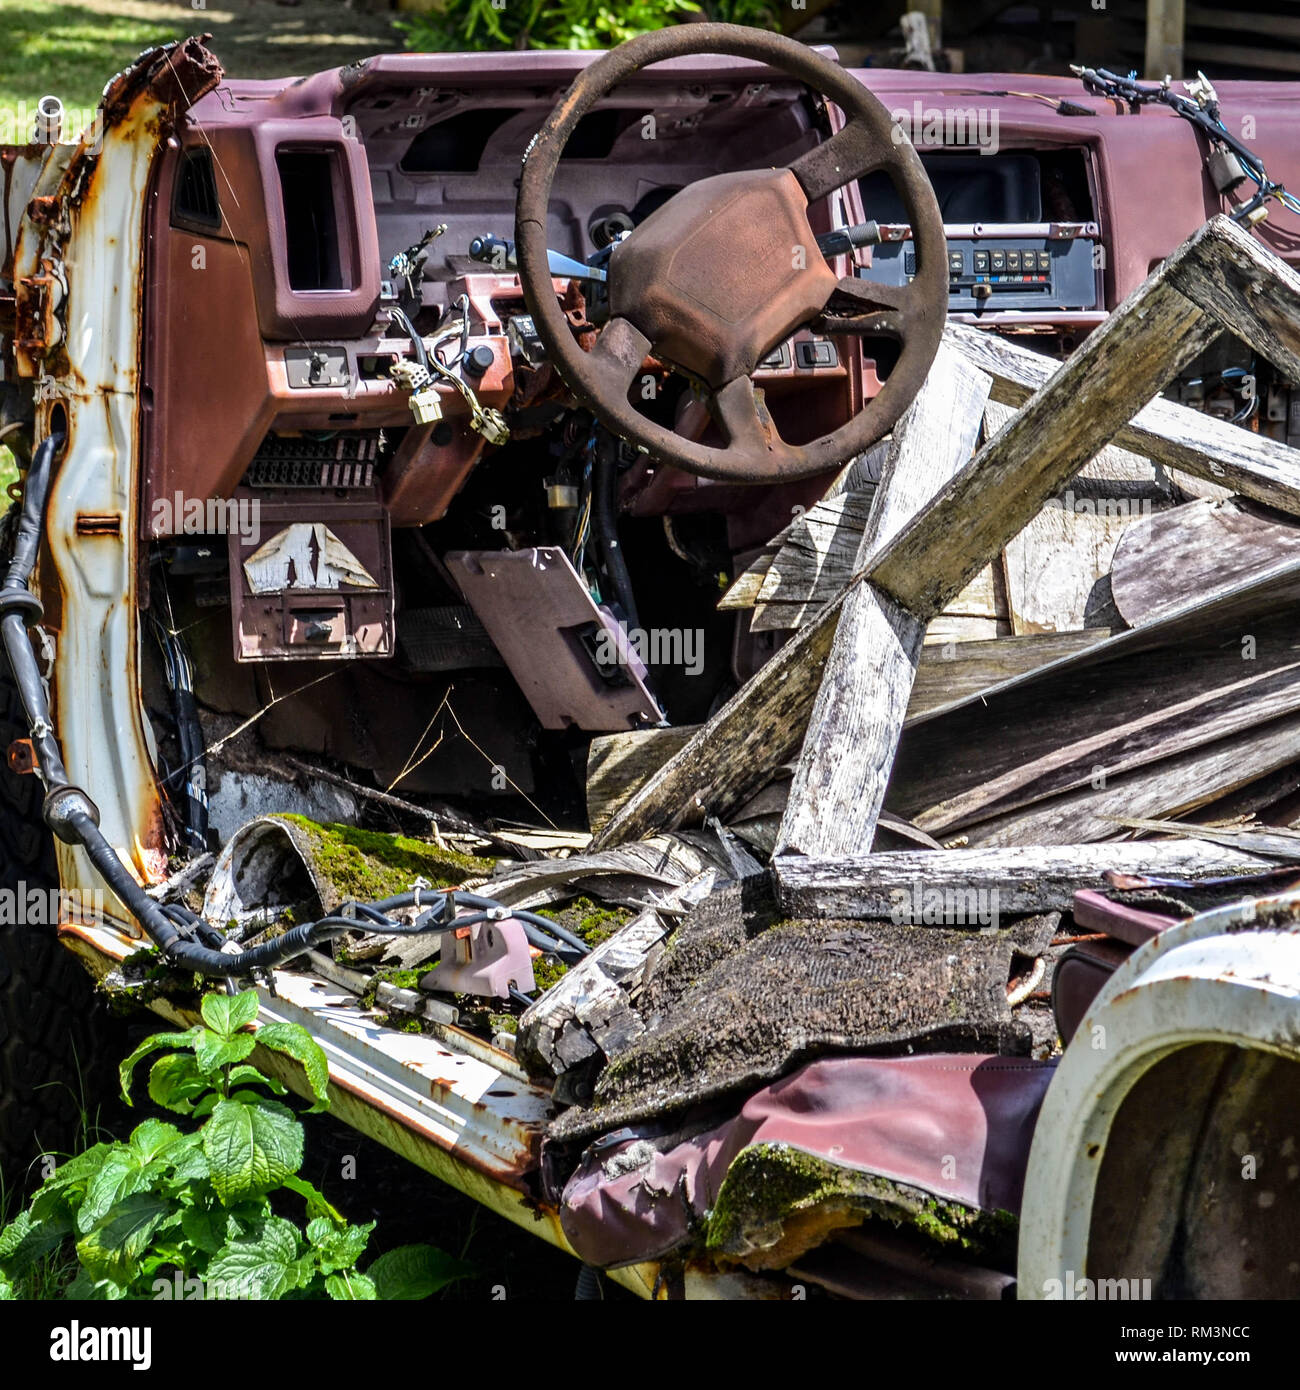 A decrepit Nissan SUV and miscellaneous wooden debris, Kauai, Hawaii - Stock Image